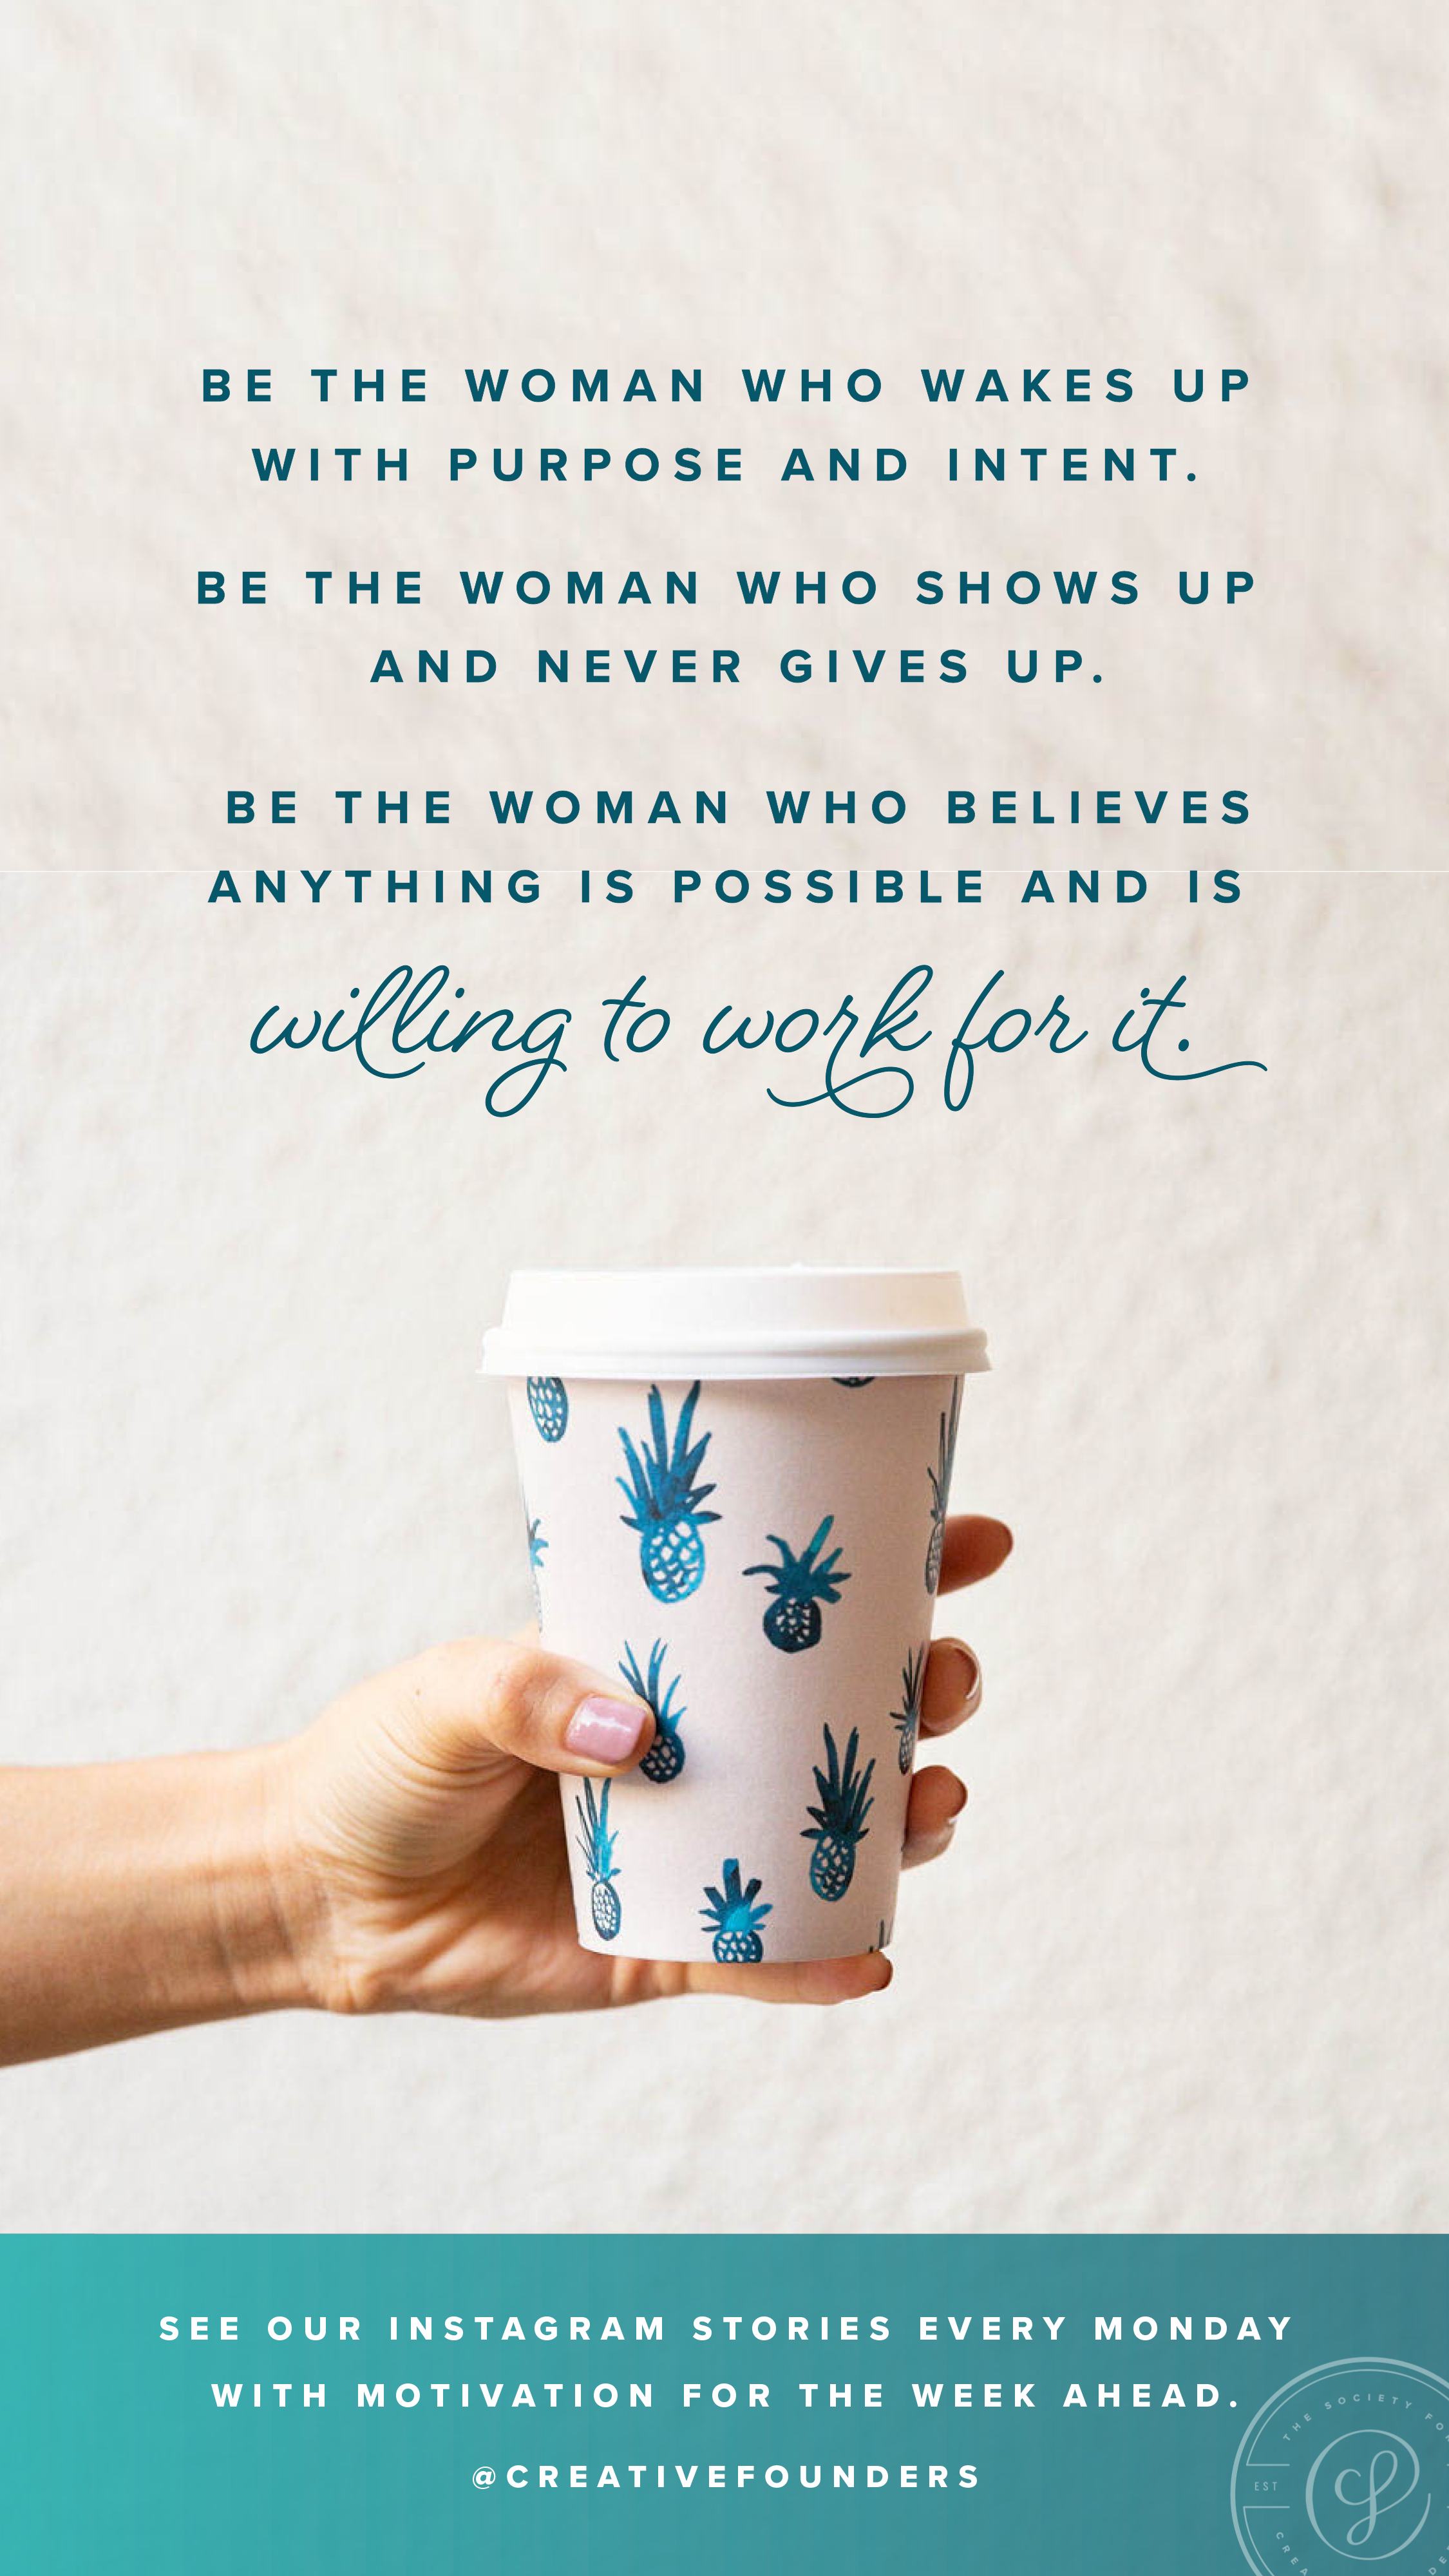 Be the woman who wakes up with purpose and intent